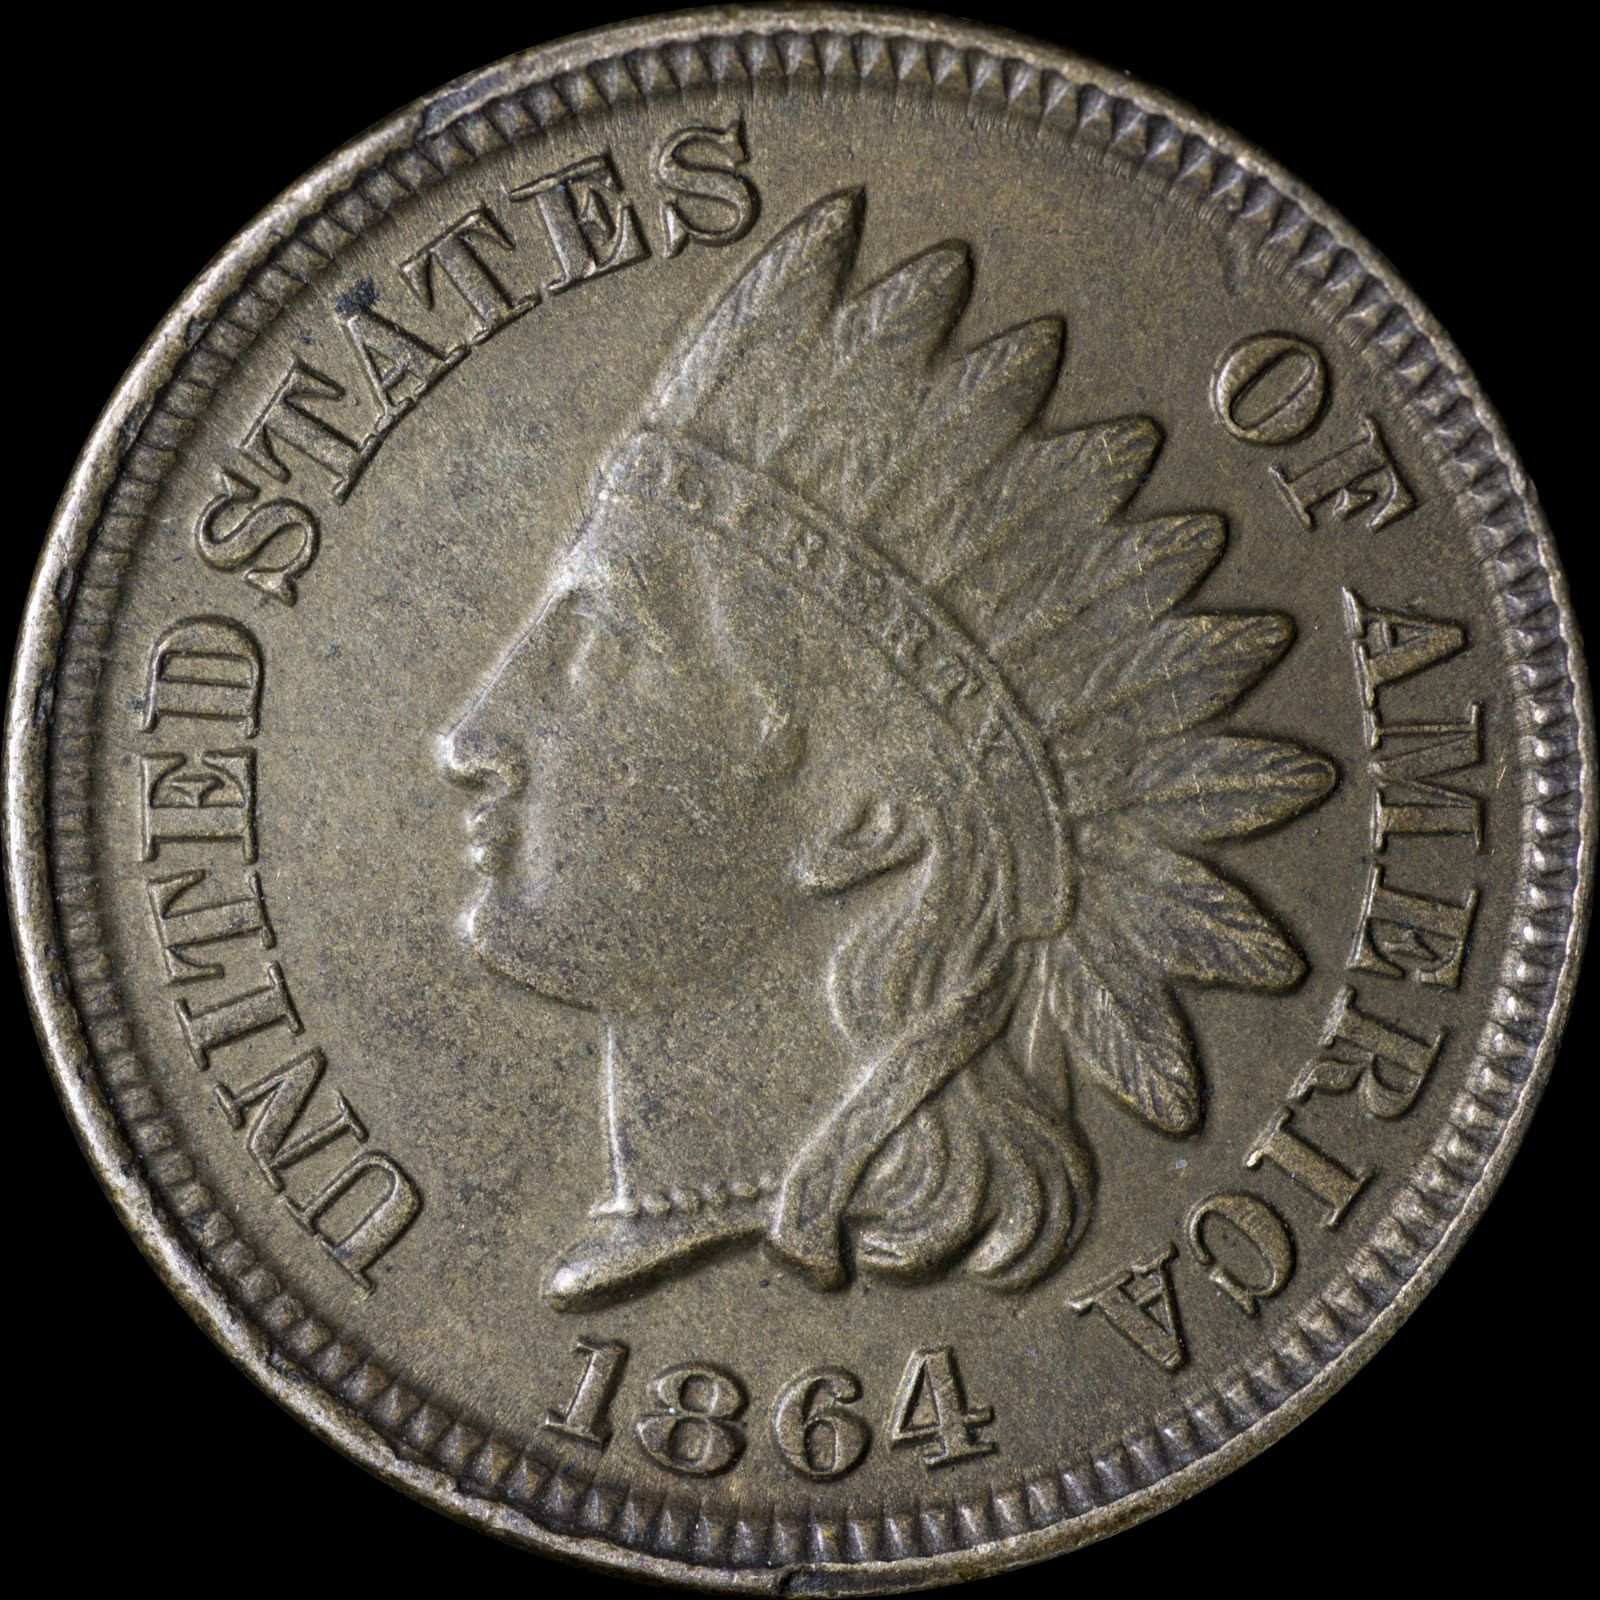 Obverse of 1864 CN CUD-005 - Indian Head Penny